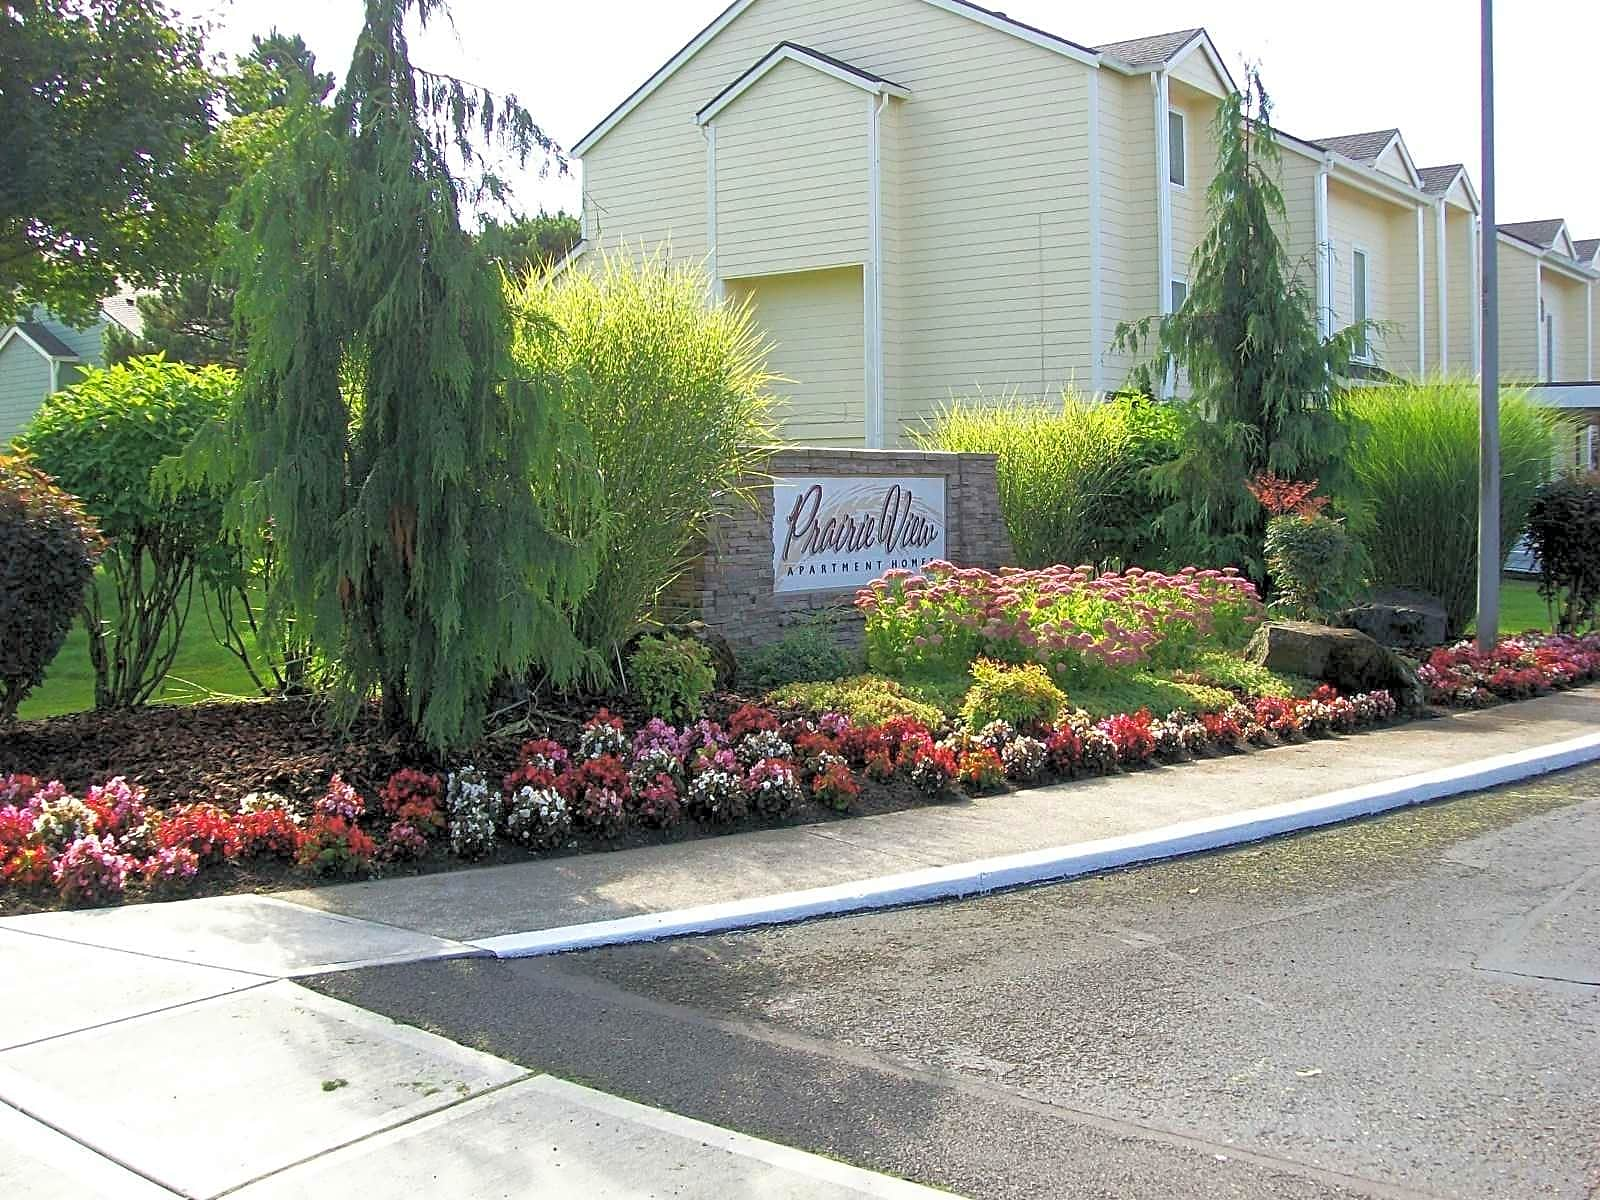 Apartments Near Clark Prairie View Apartment Homes for Clark College Students in Vancouver, WA